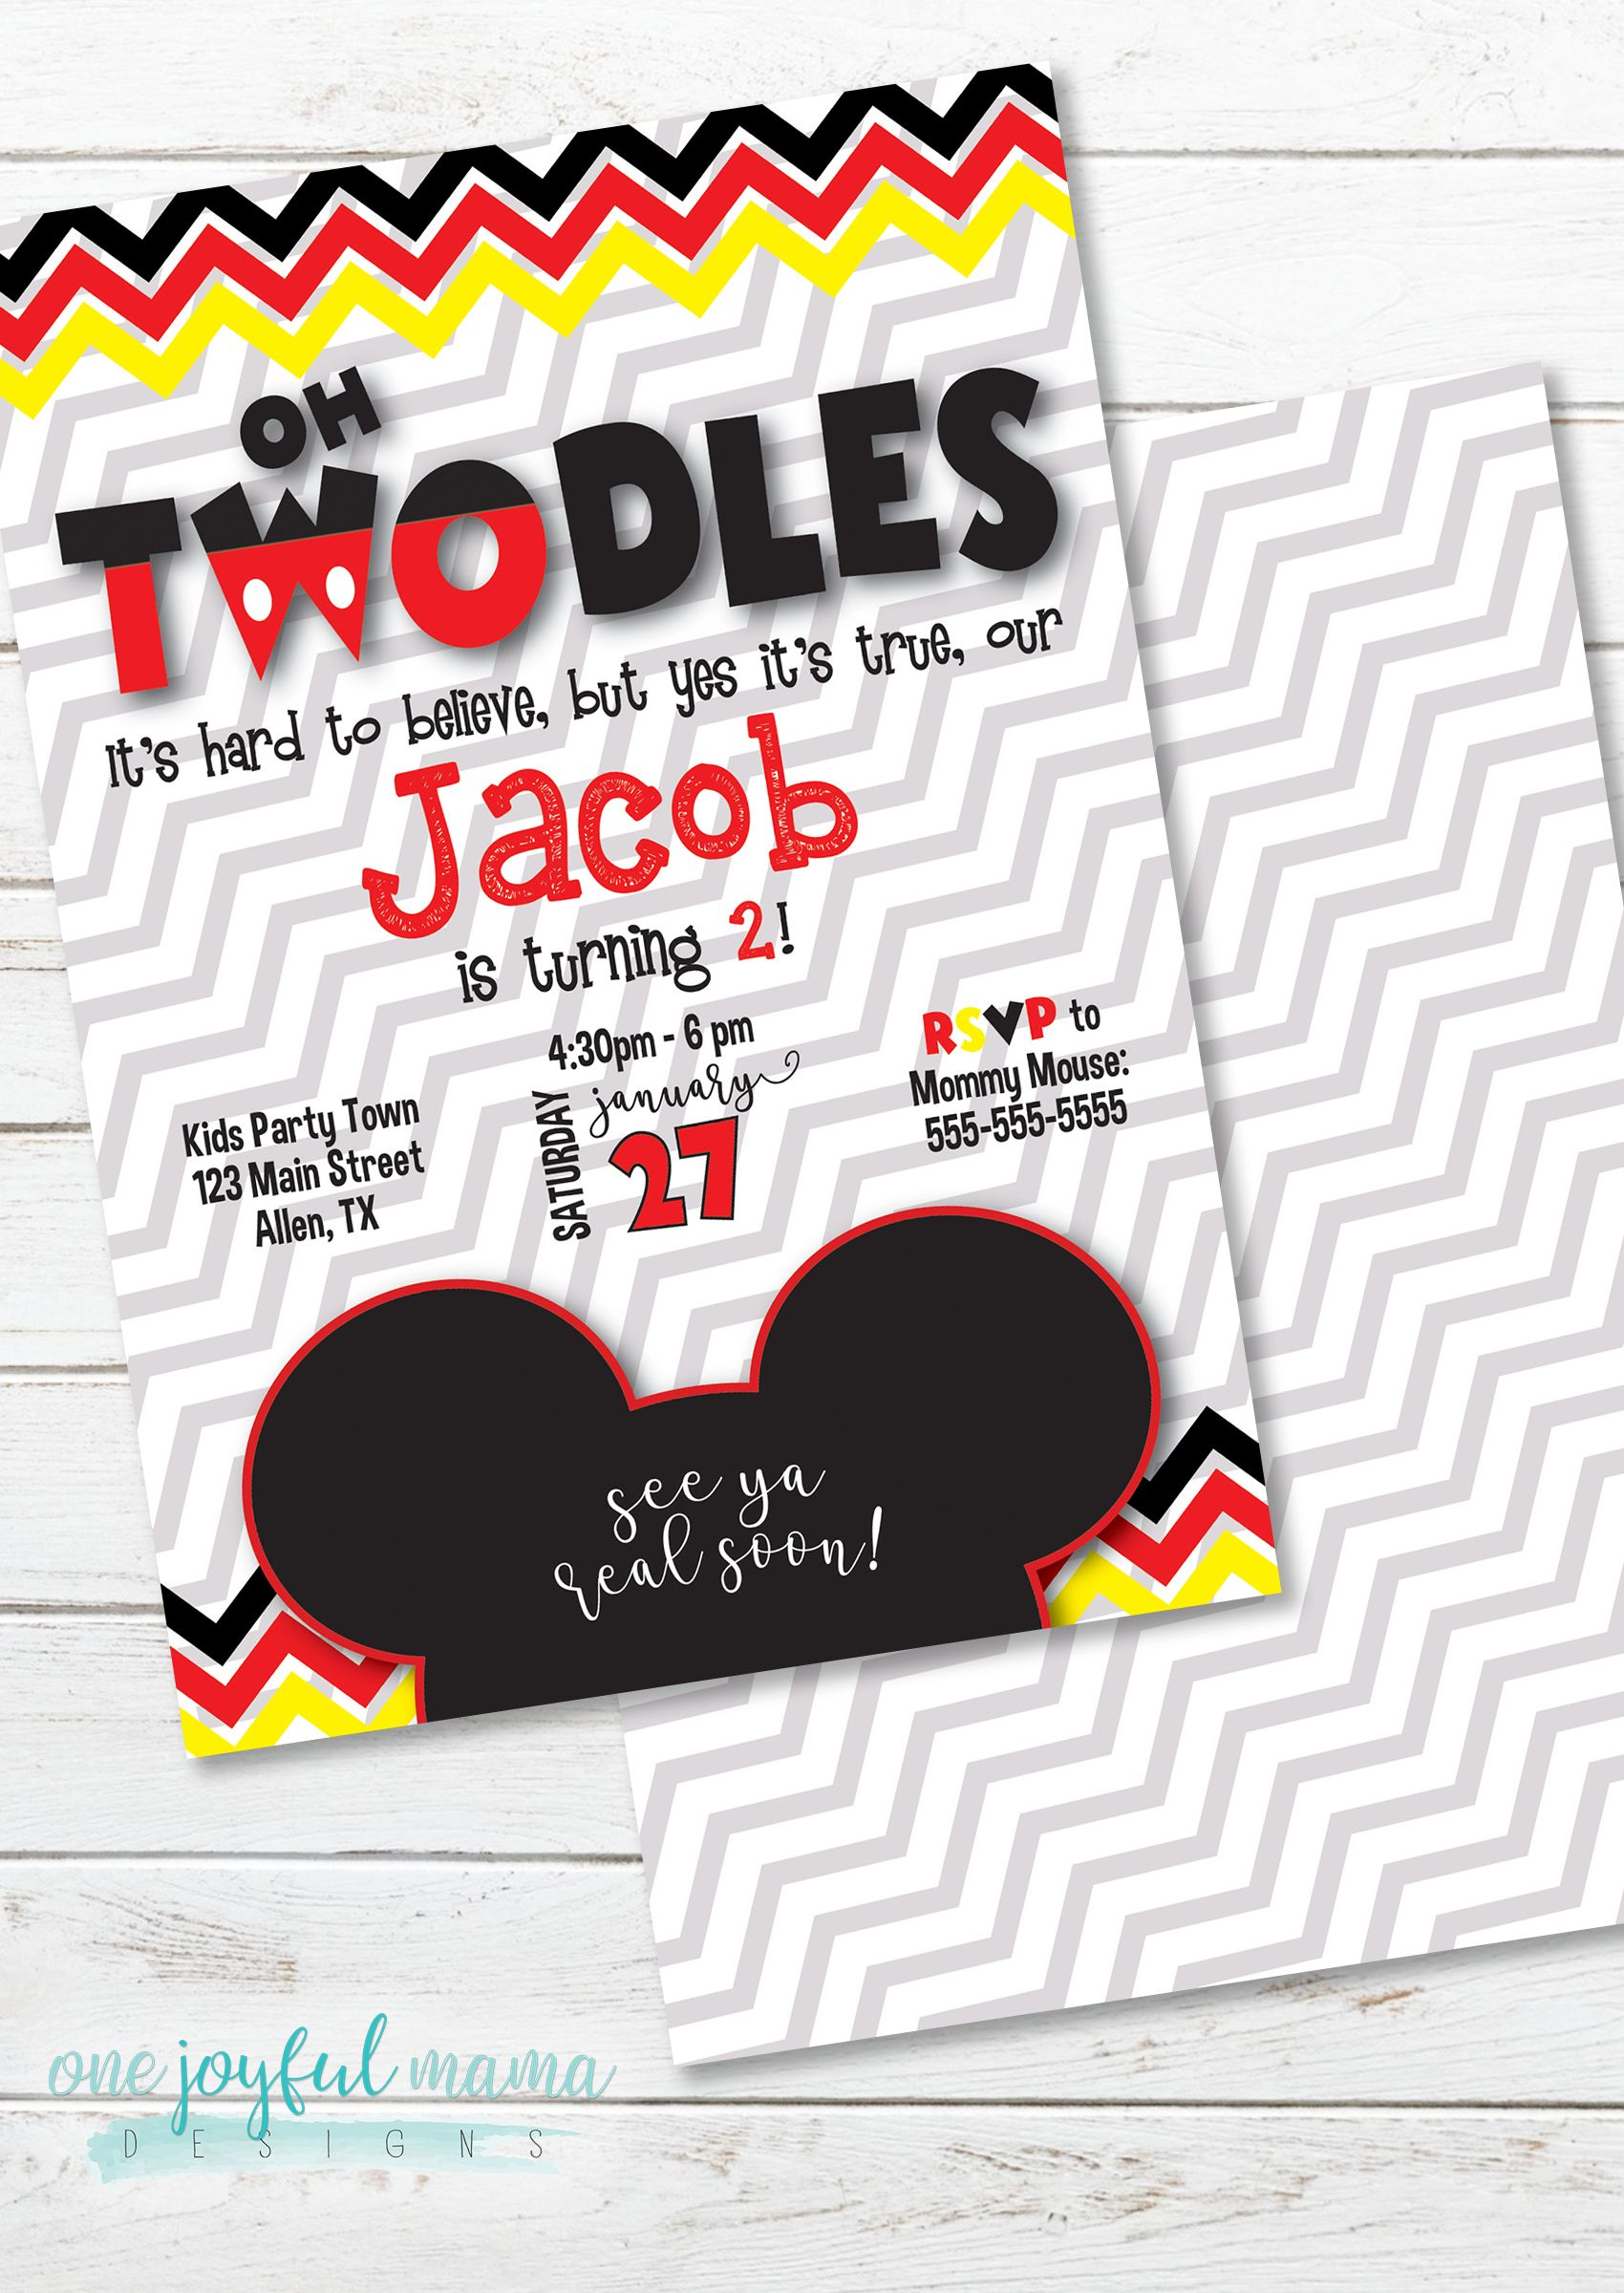 Oh TWOdles 2nd birthday party theme so adorable for a